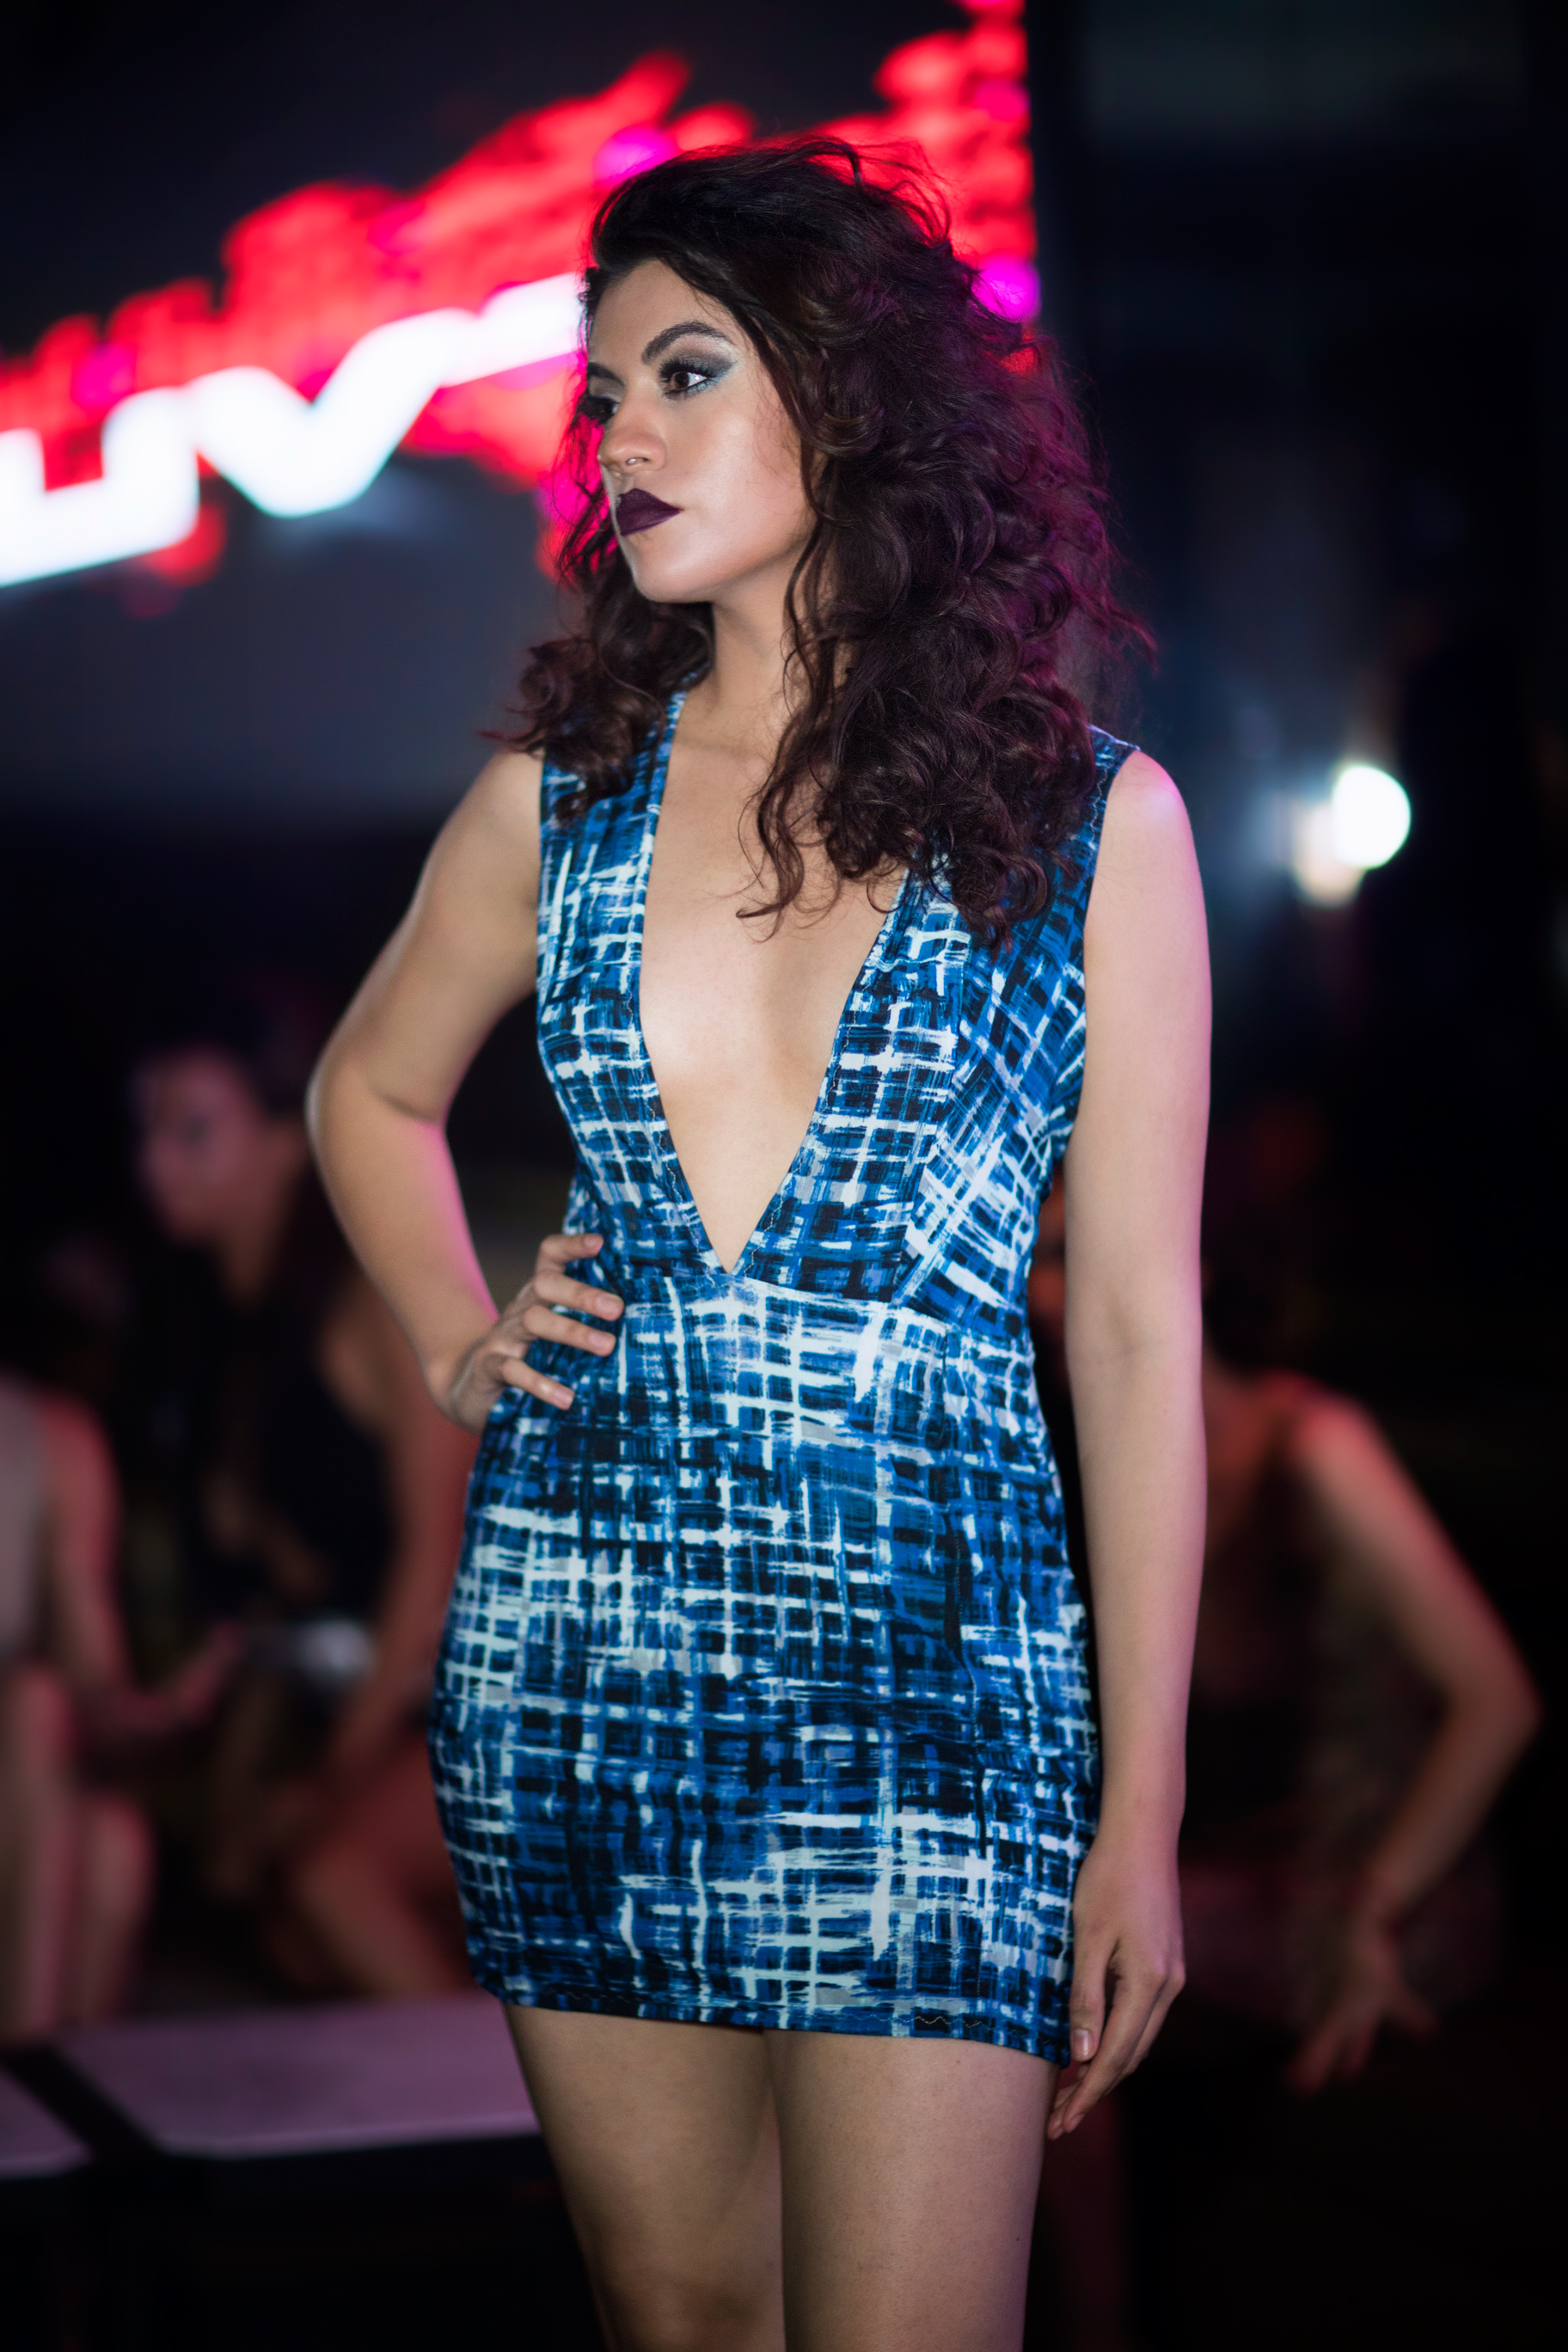 Alive Fashion Show - 002.jpg